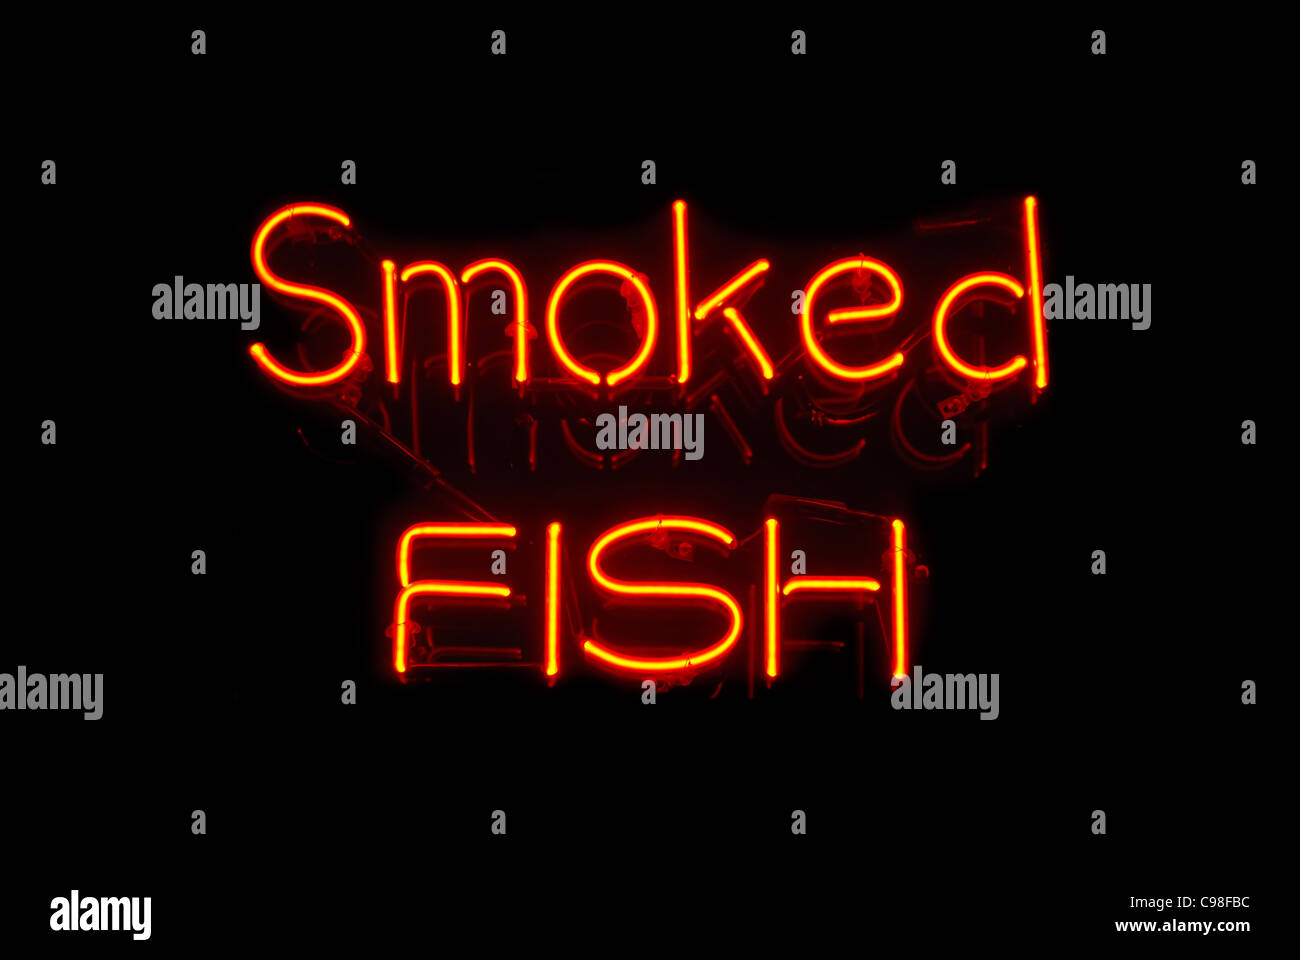 Smoked Fish neon sign isolated on black background - Stock Image